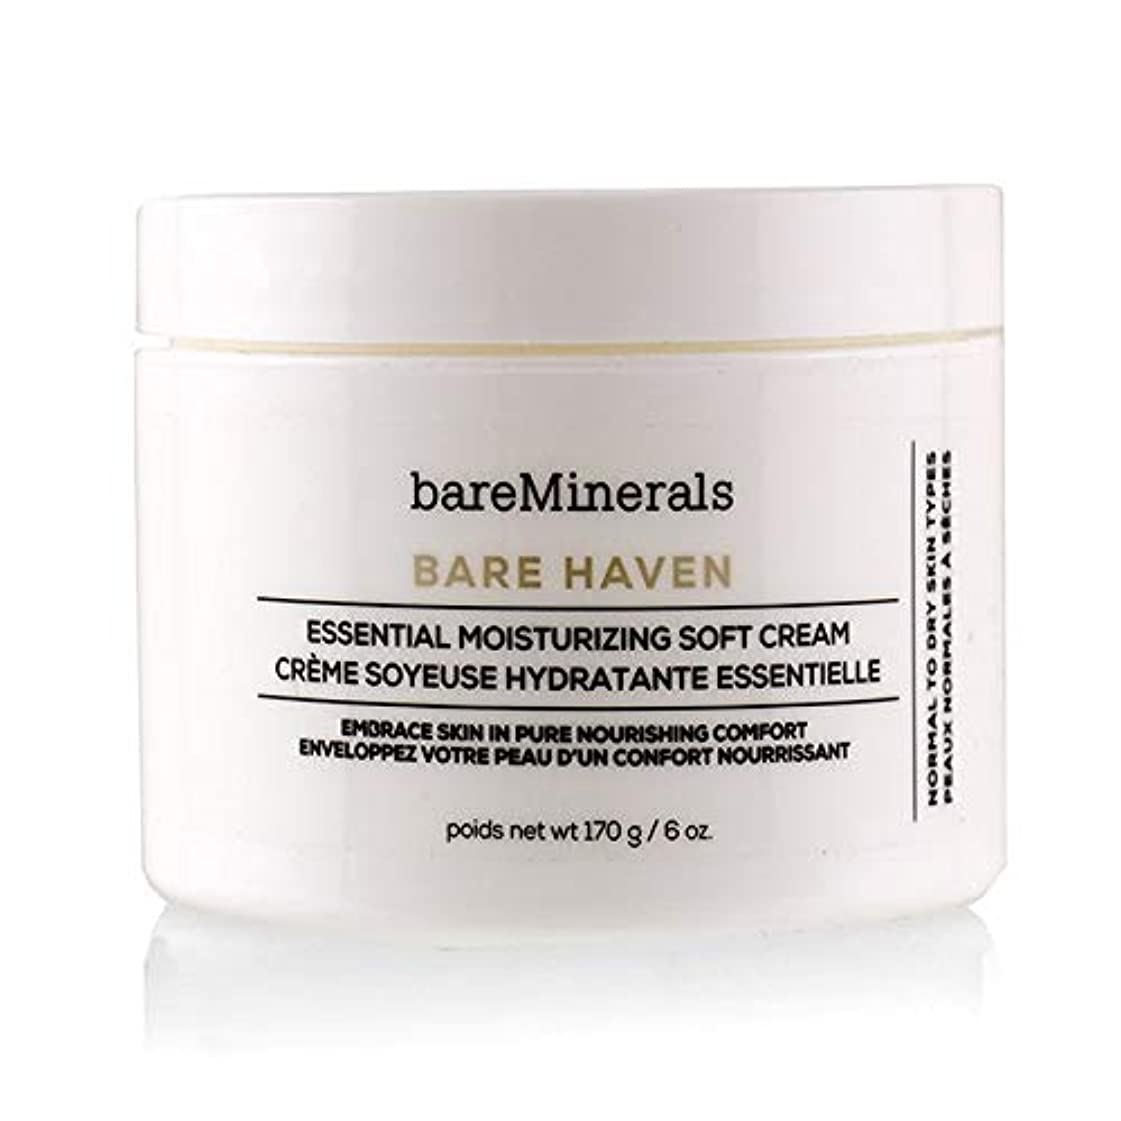 オペレーター風代表ベアミネラル Bare Haven Essential Moisturizing Soft Cream - Normal To Dry Skin Types (Salon Size) 170g/6oz並行輸入品